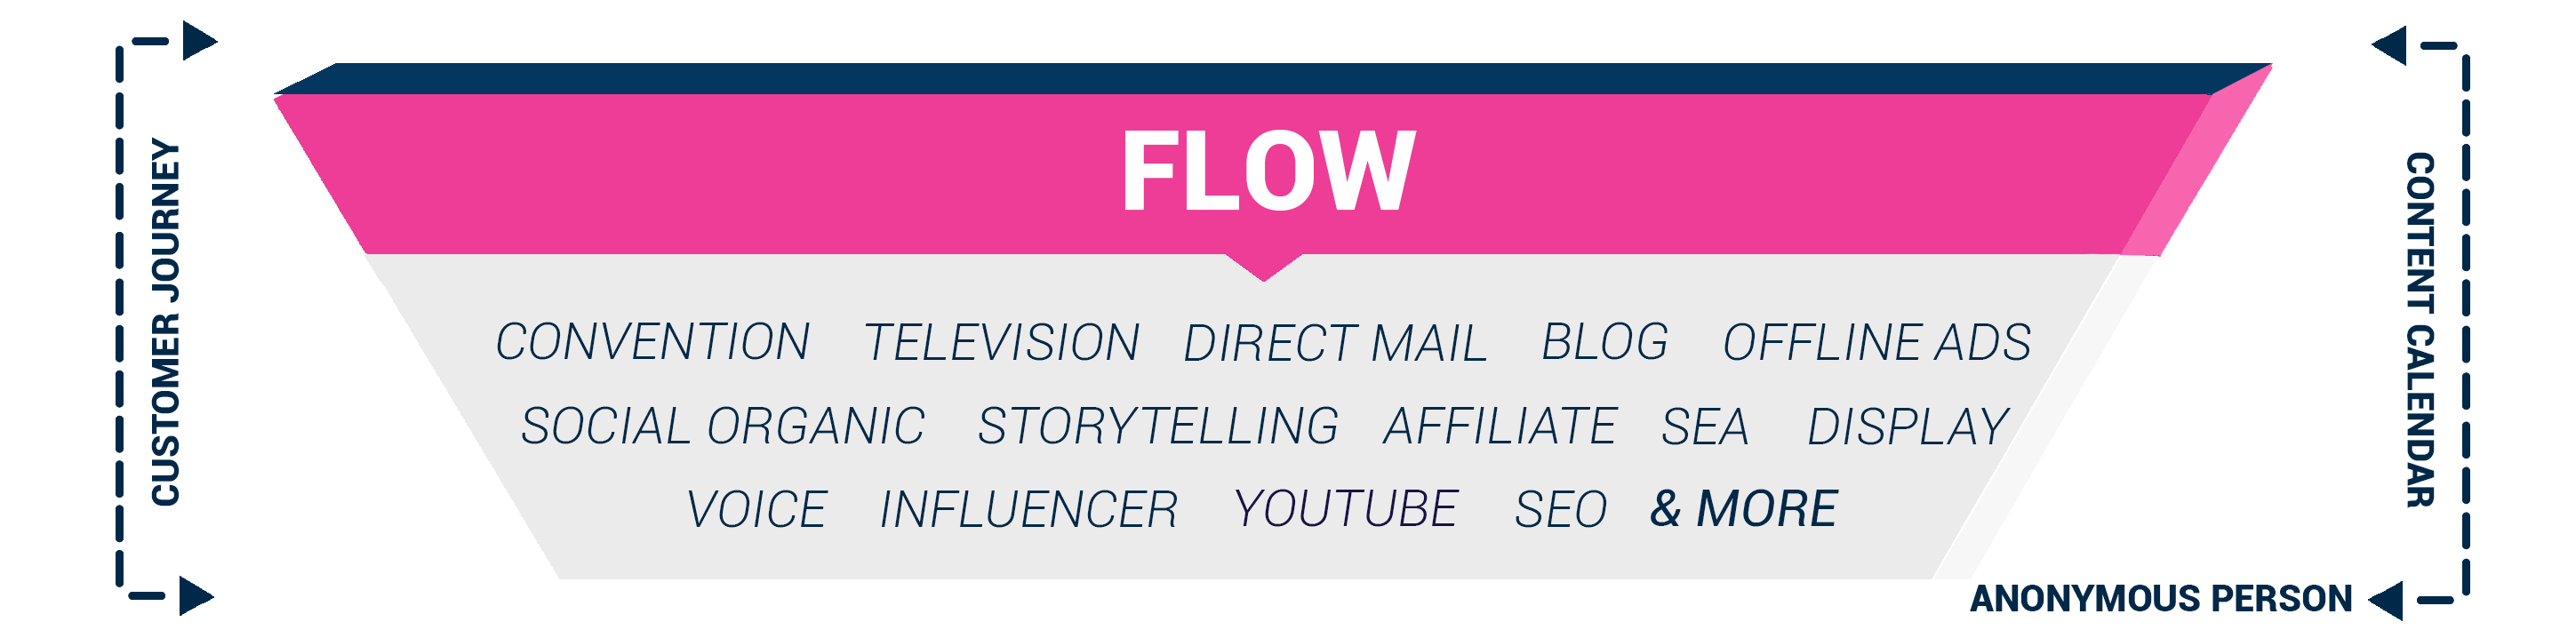 Flow fase 4F Model Marketing